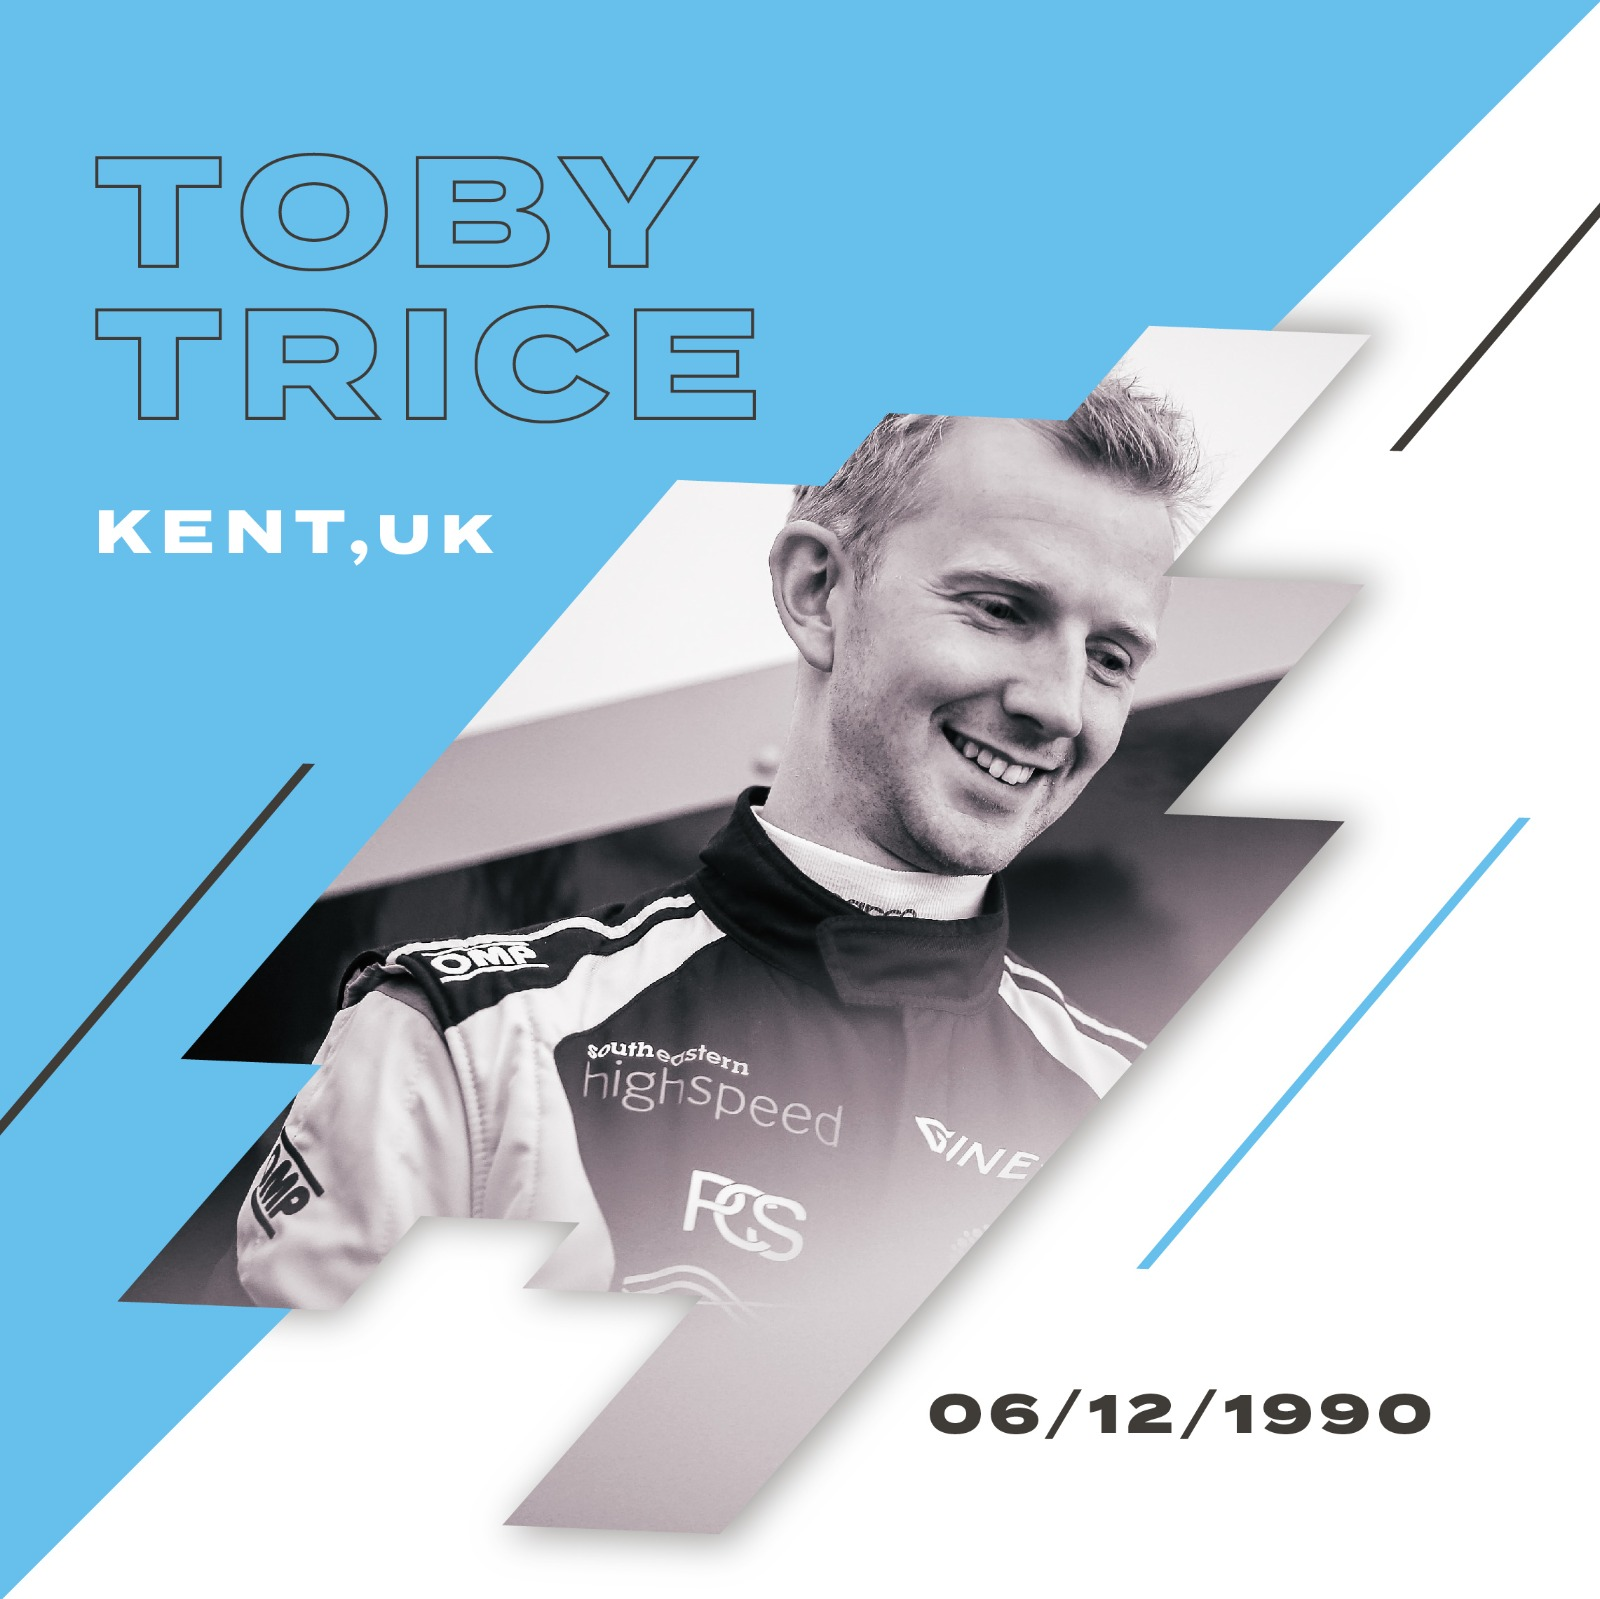 Toby Trice is a British racing driver on a campaign to raise awareness for fertility through motorsport.